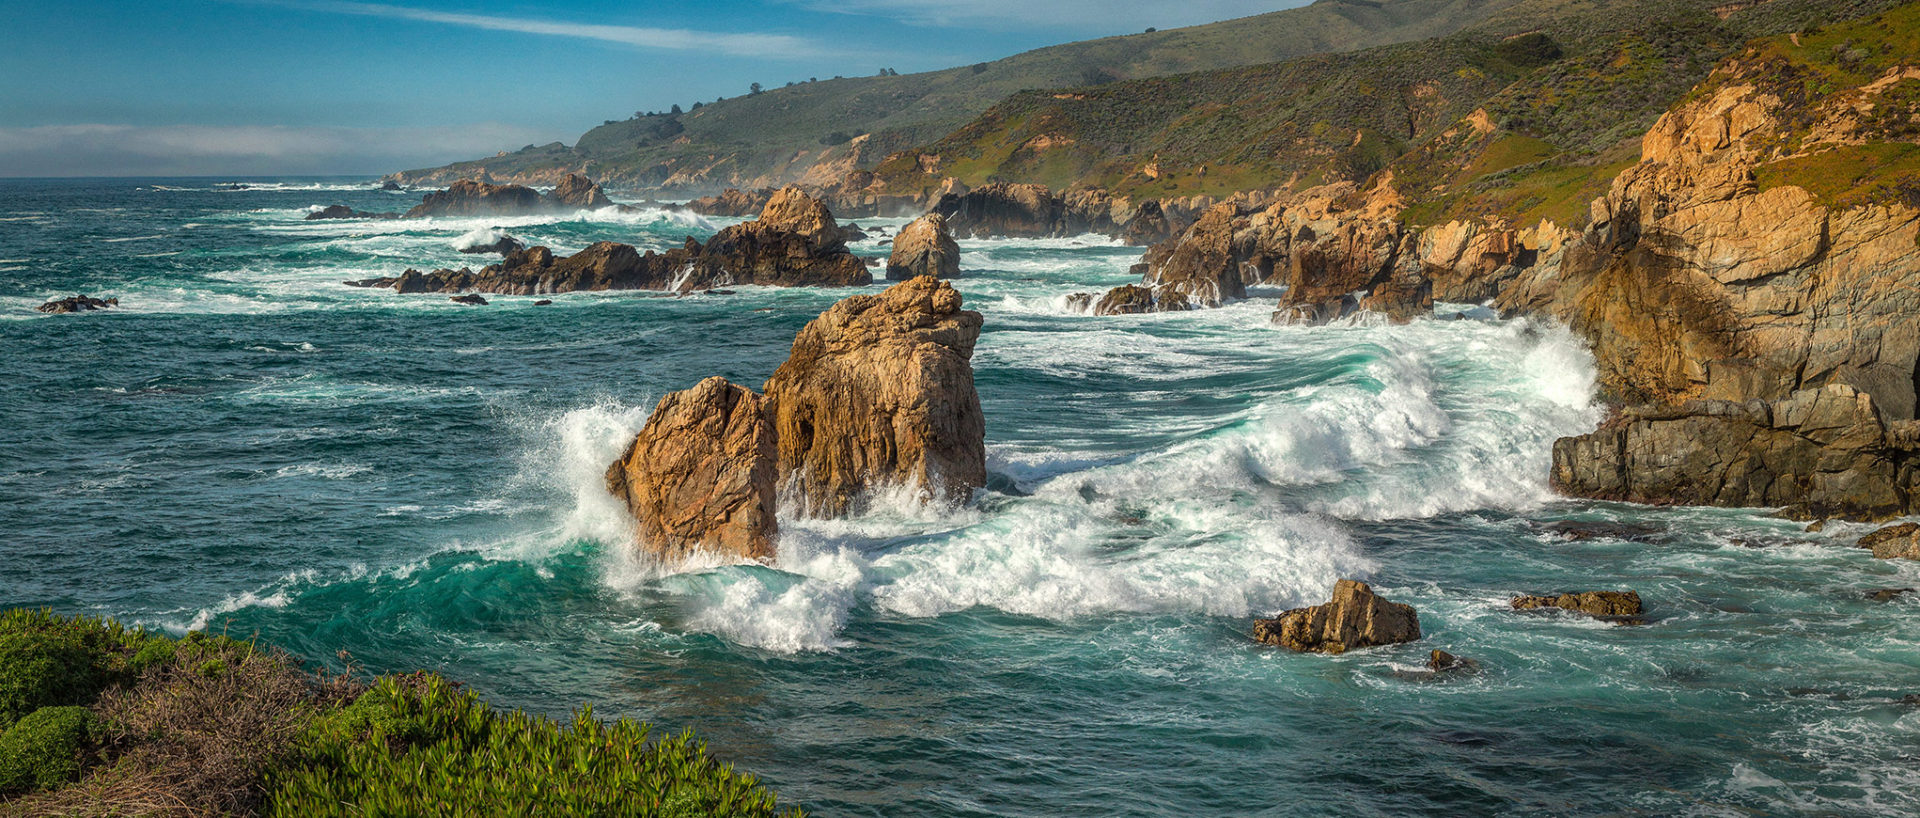 Travel the California Coastline - Big Sur